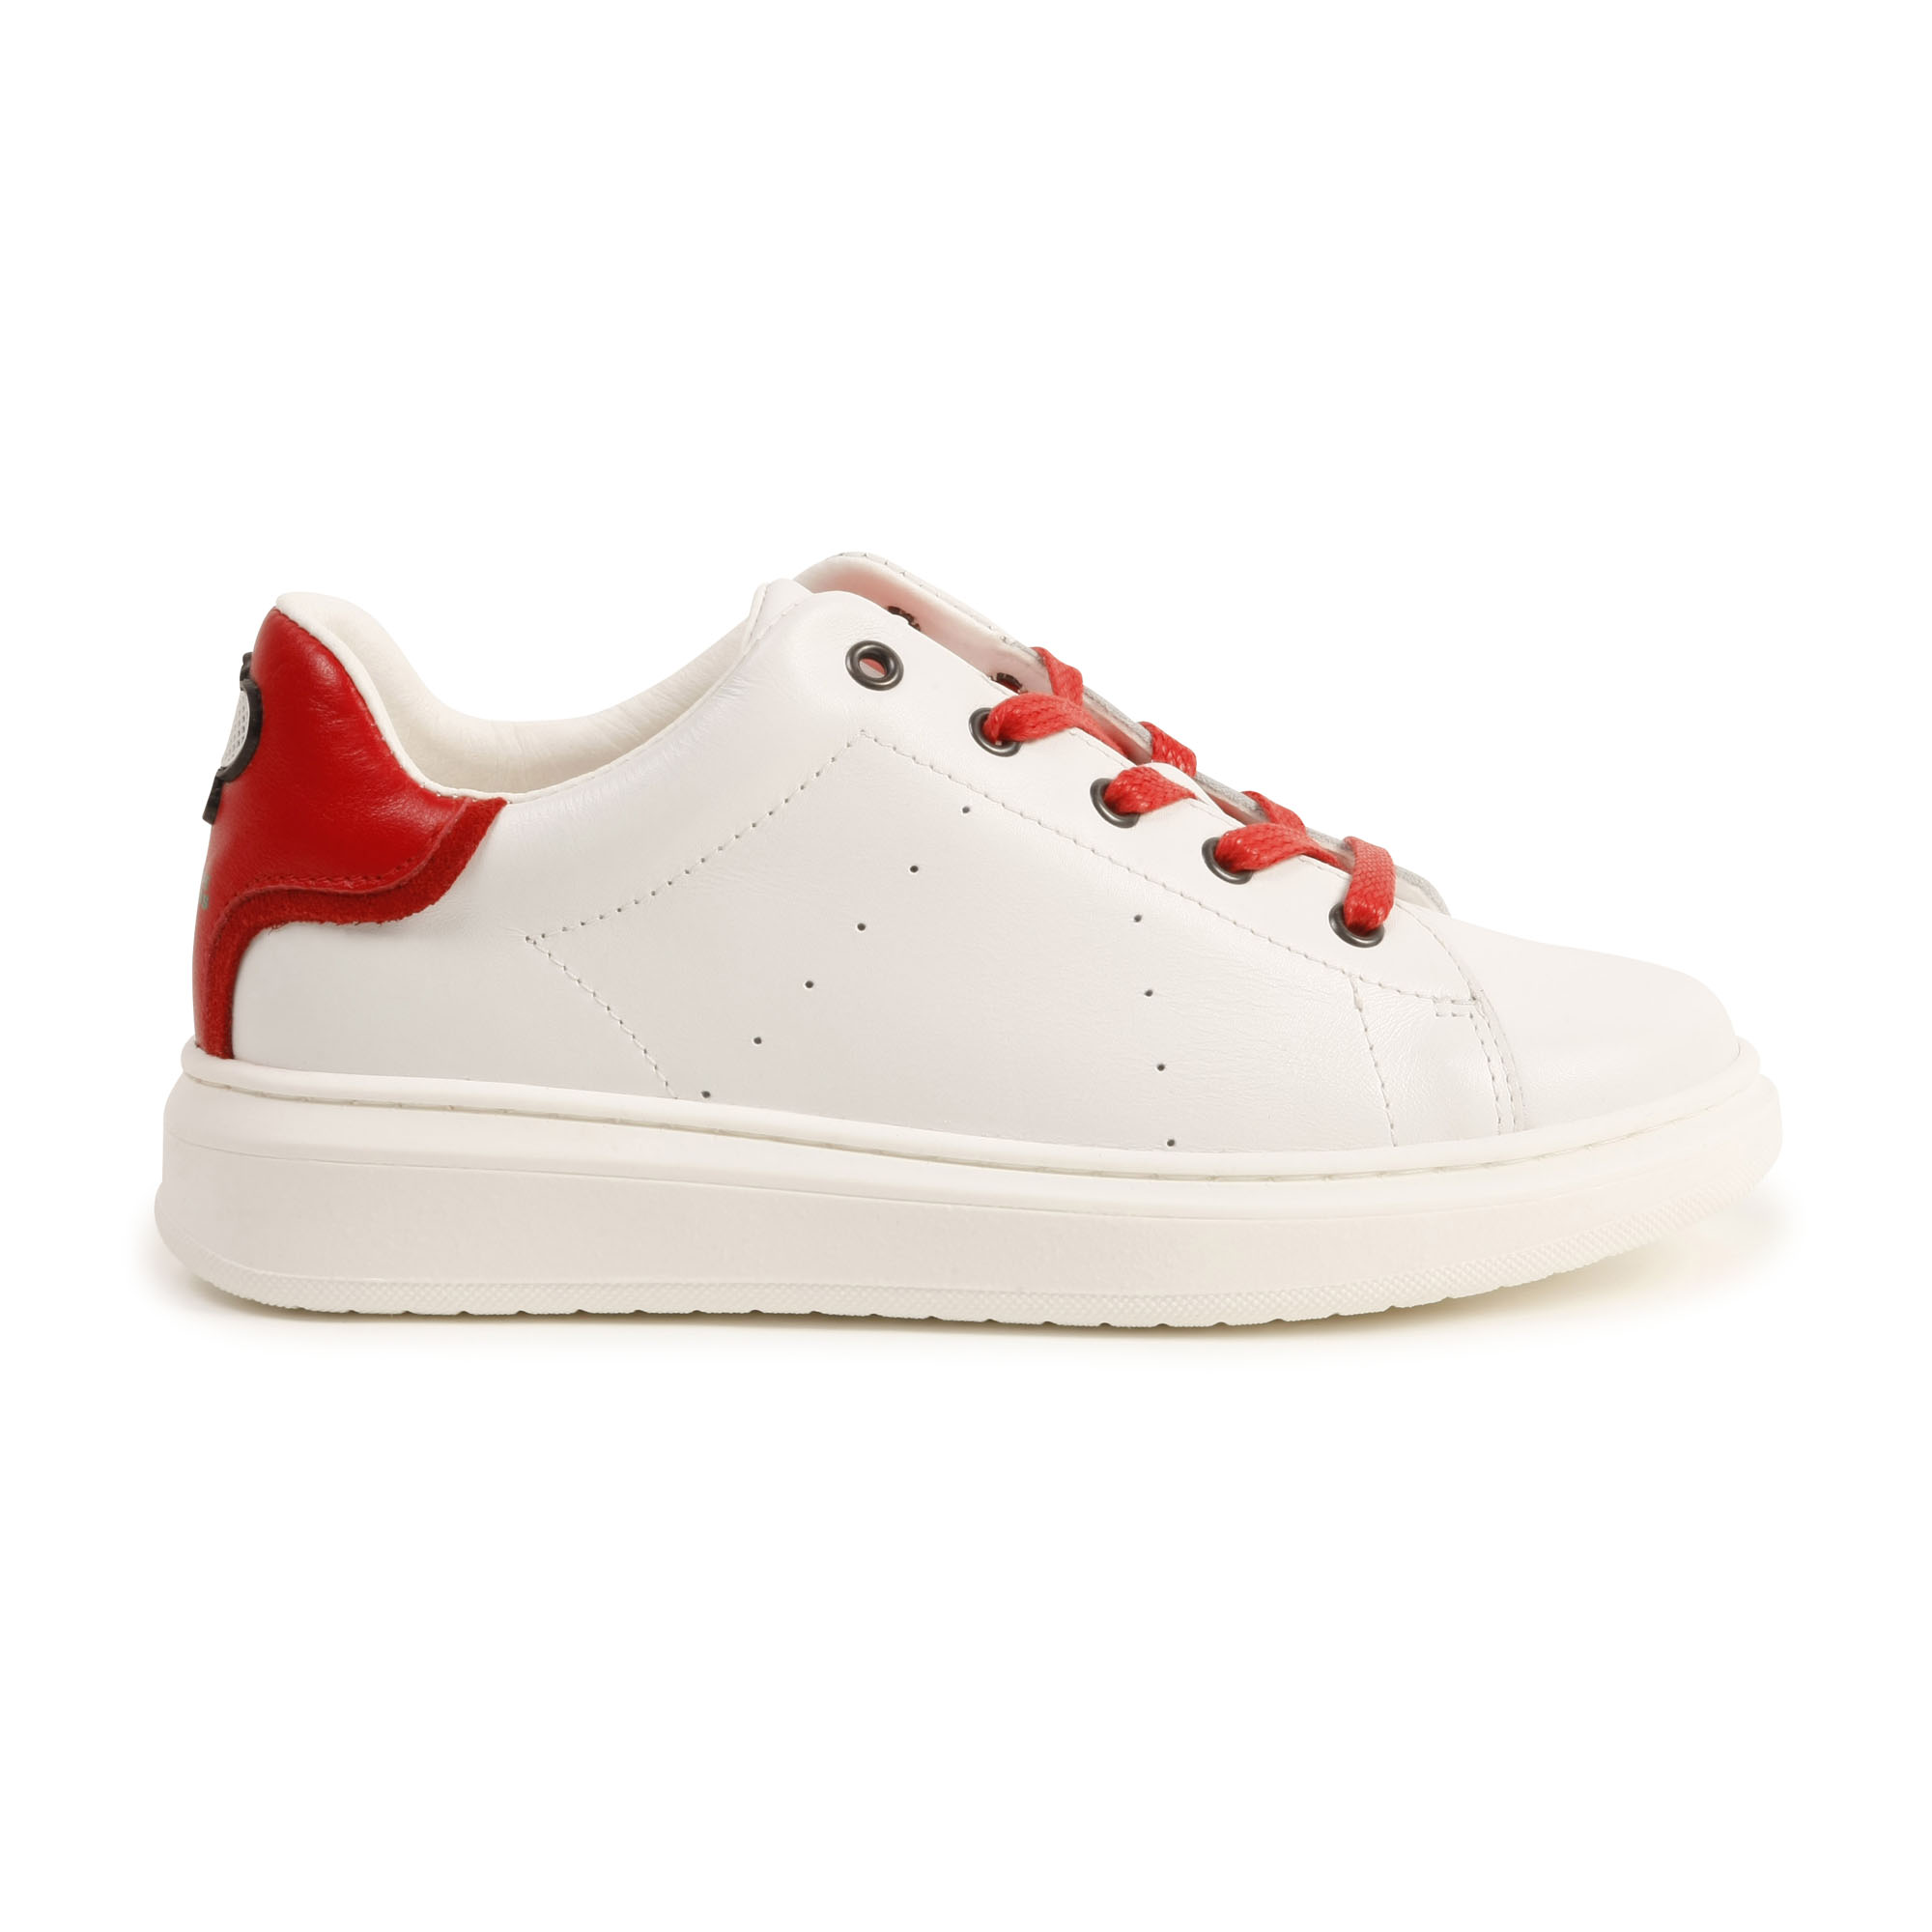 Lace-up leather sneakers THE MARC JACOBS for BOY